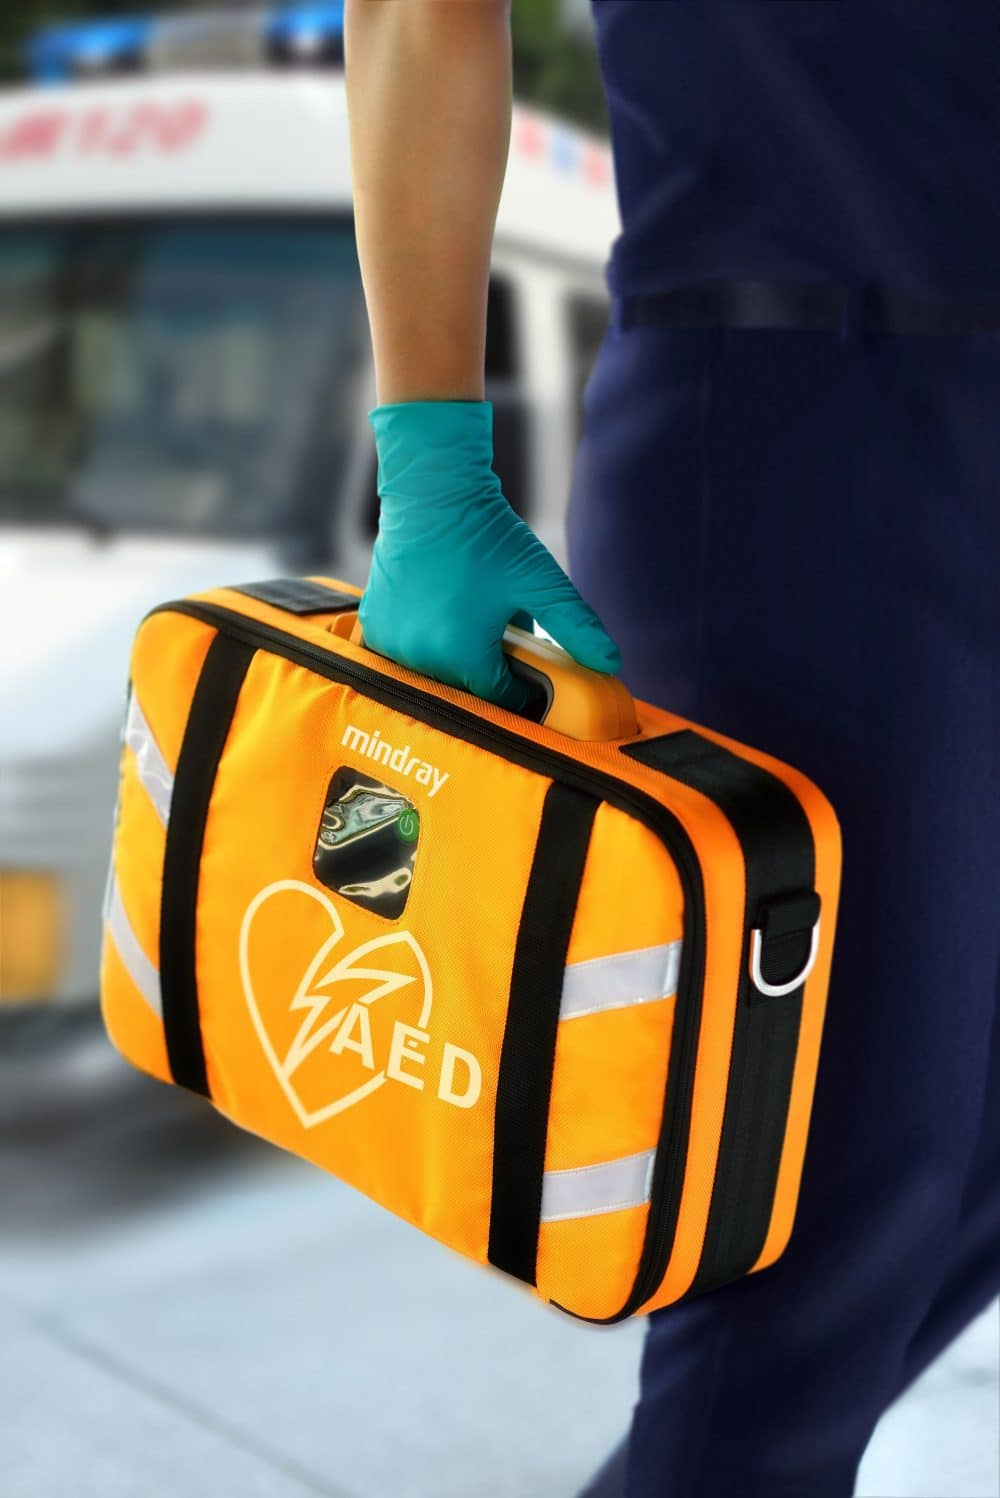 Portable Defibrillators AEDs